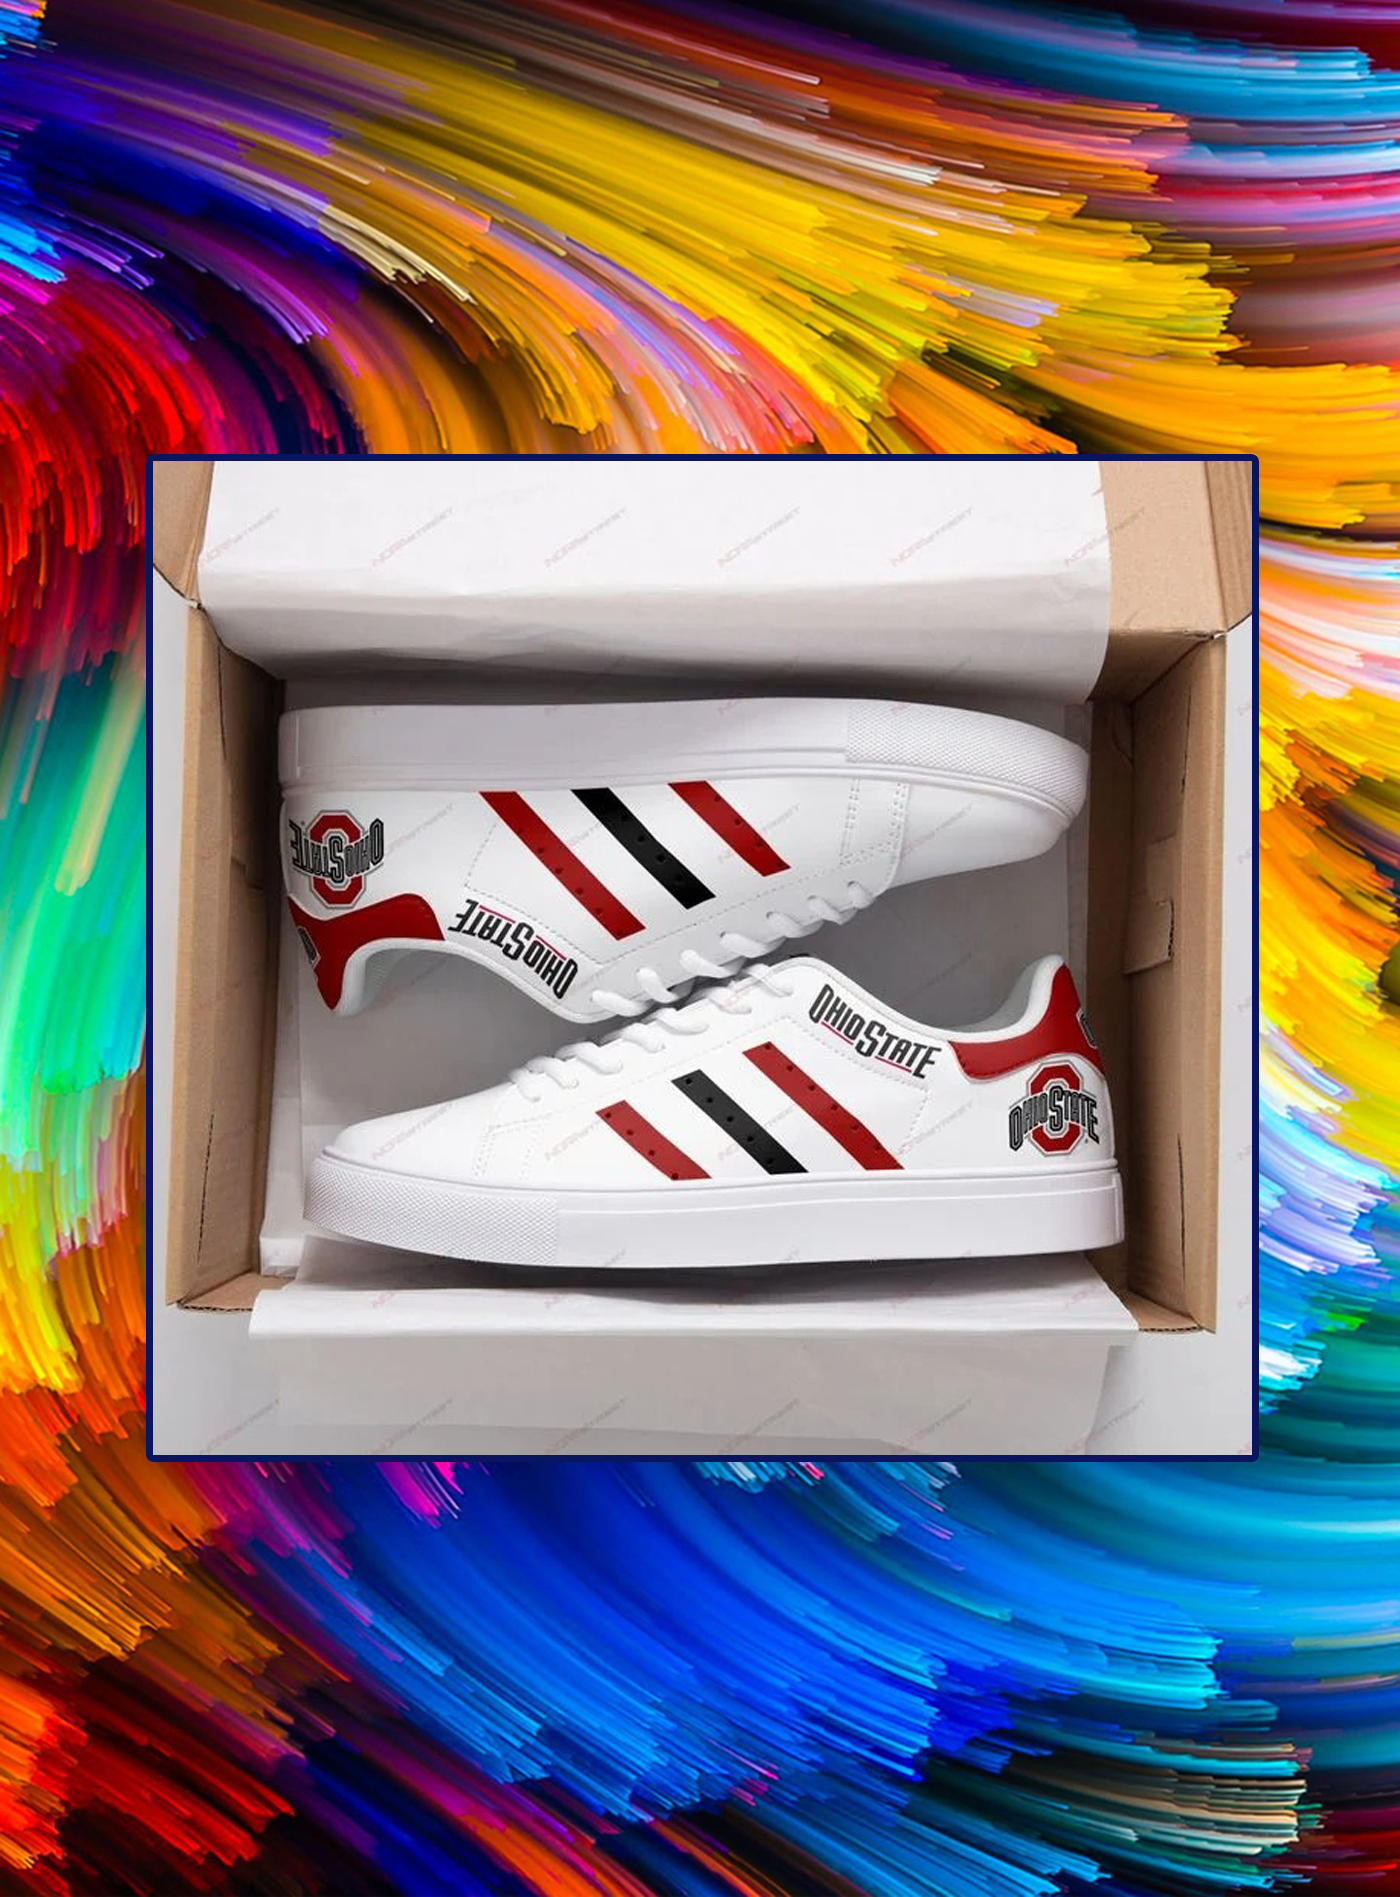 Ohio state buckeyes low top shoes - Picture 1